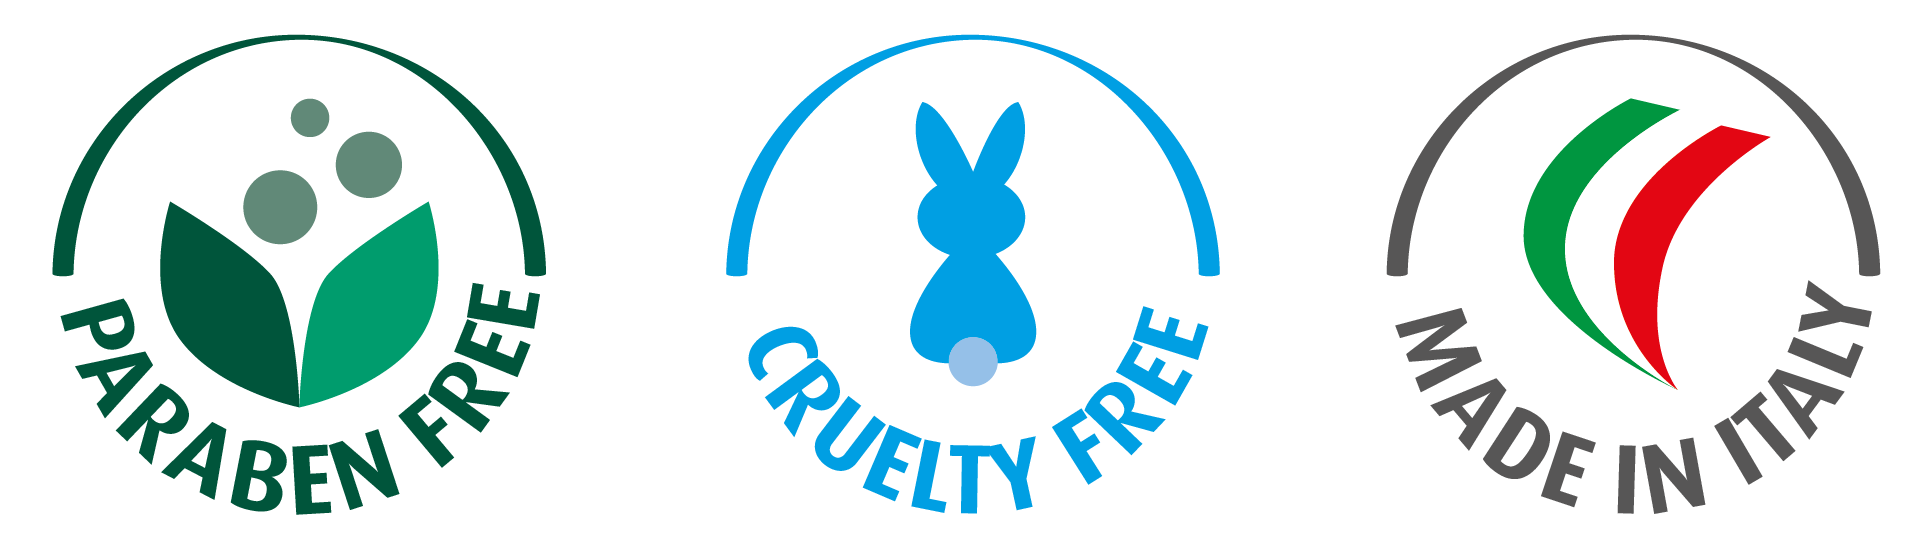 paragon free cruelty free made in italy